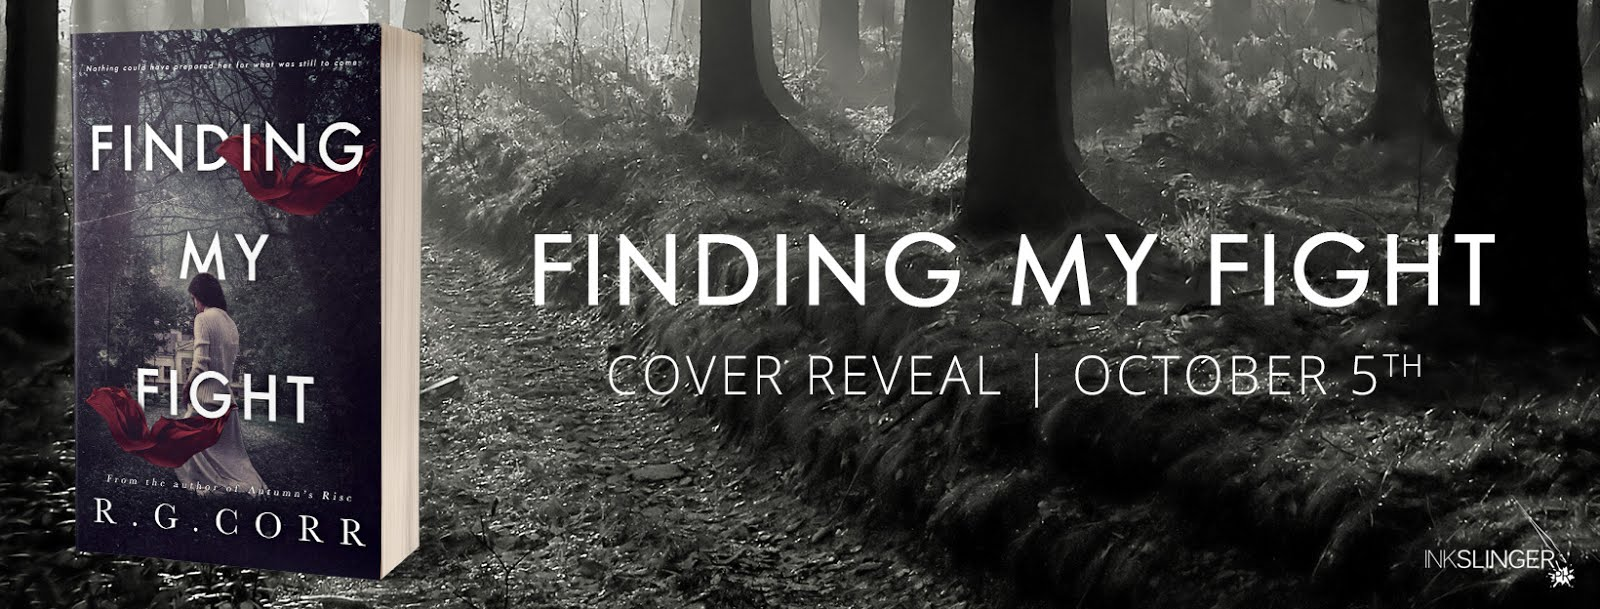 Finding My Fight Cover Reveal